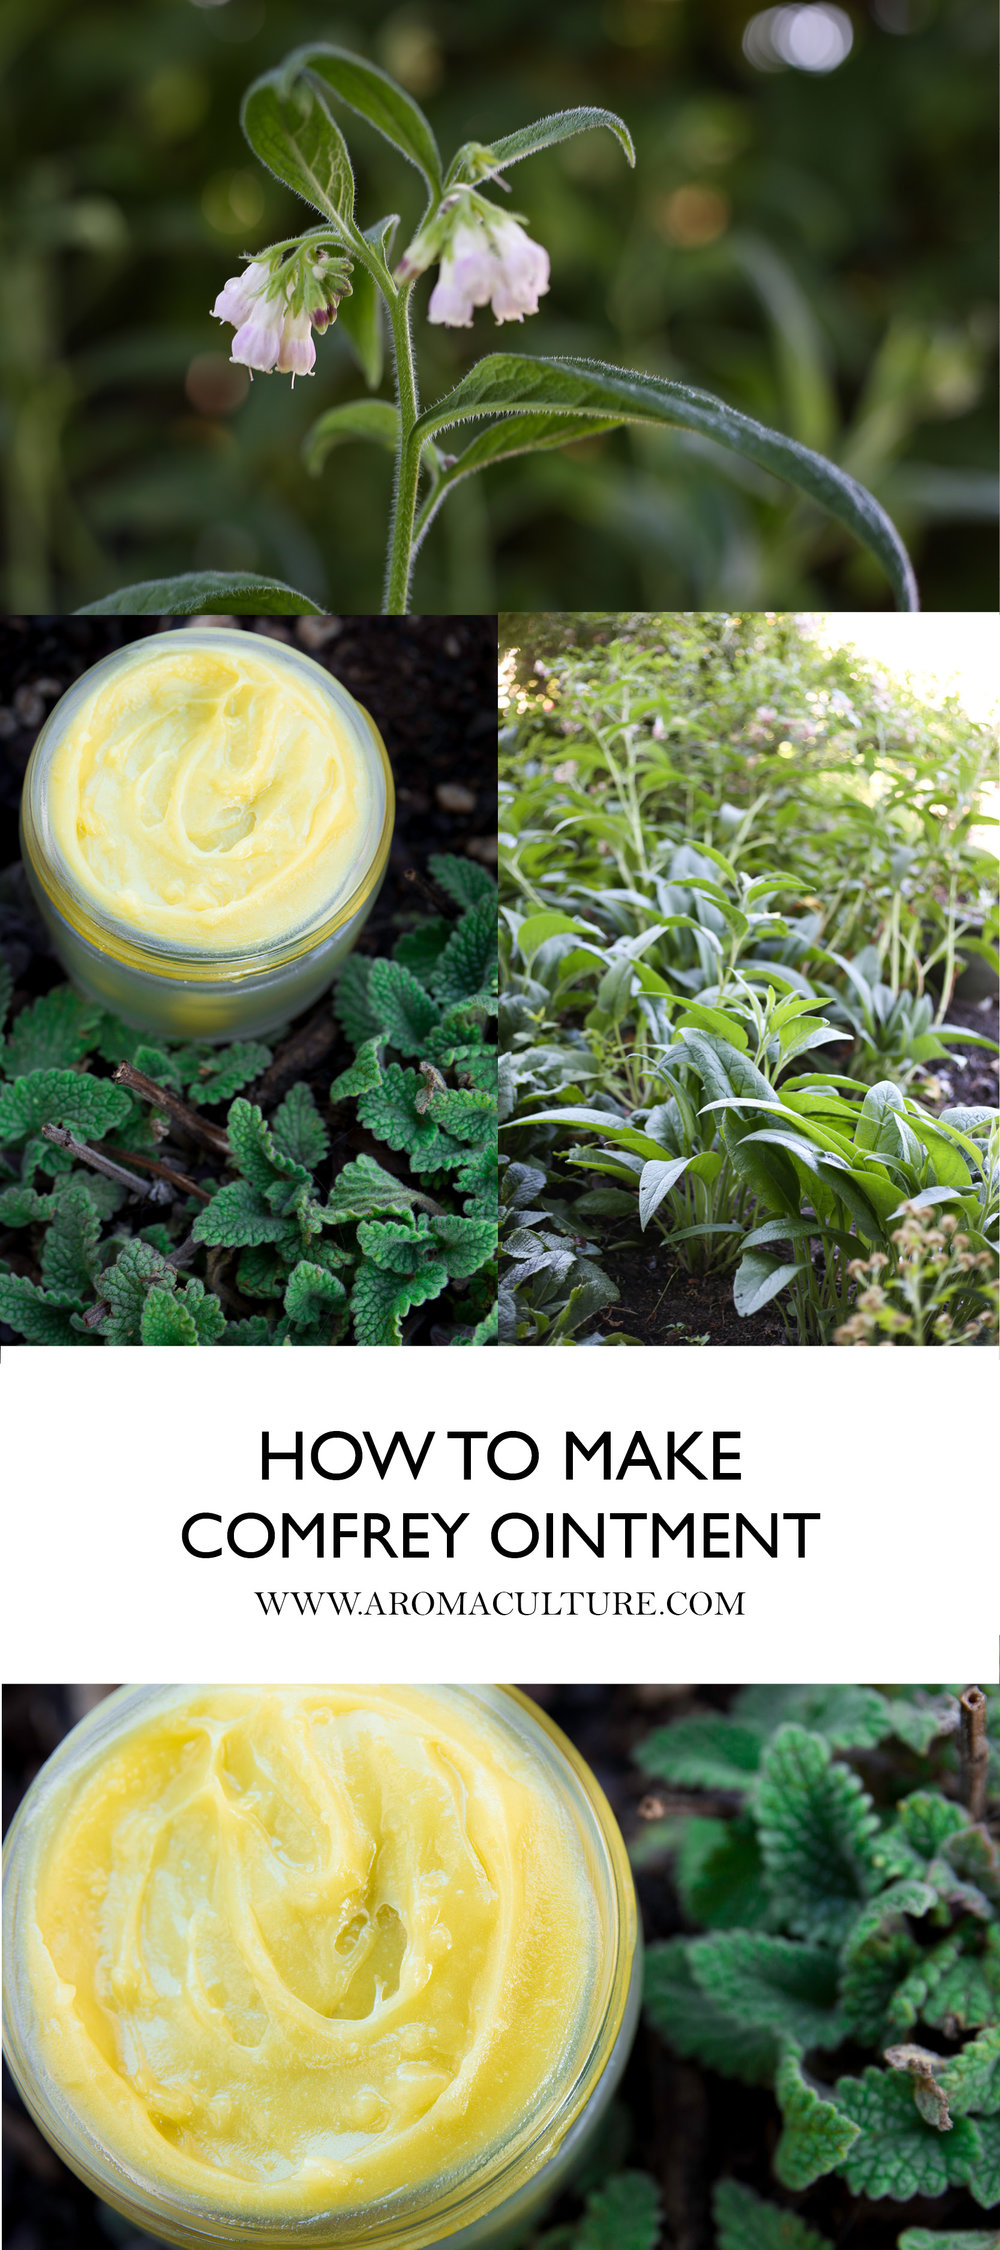 HOW TO MAKE COMFREY OINTMENT BY AROMACULTURE.jpg